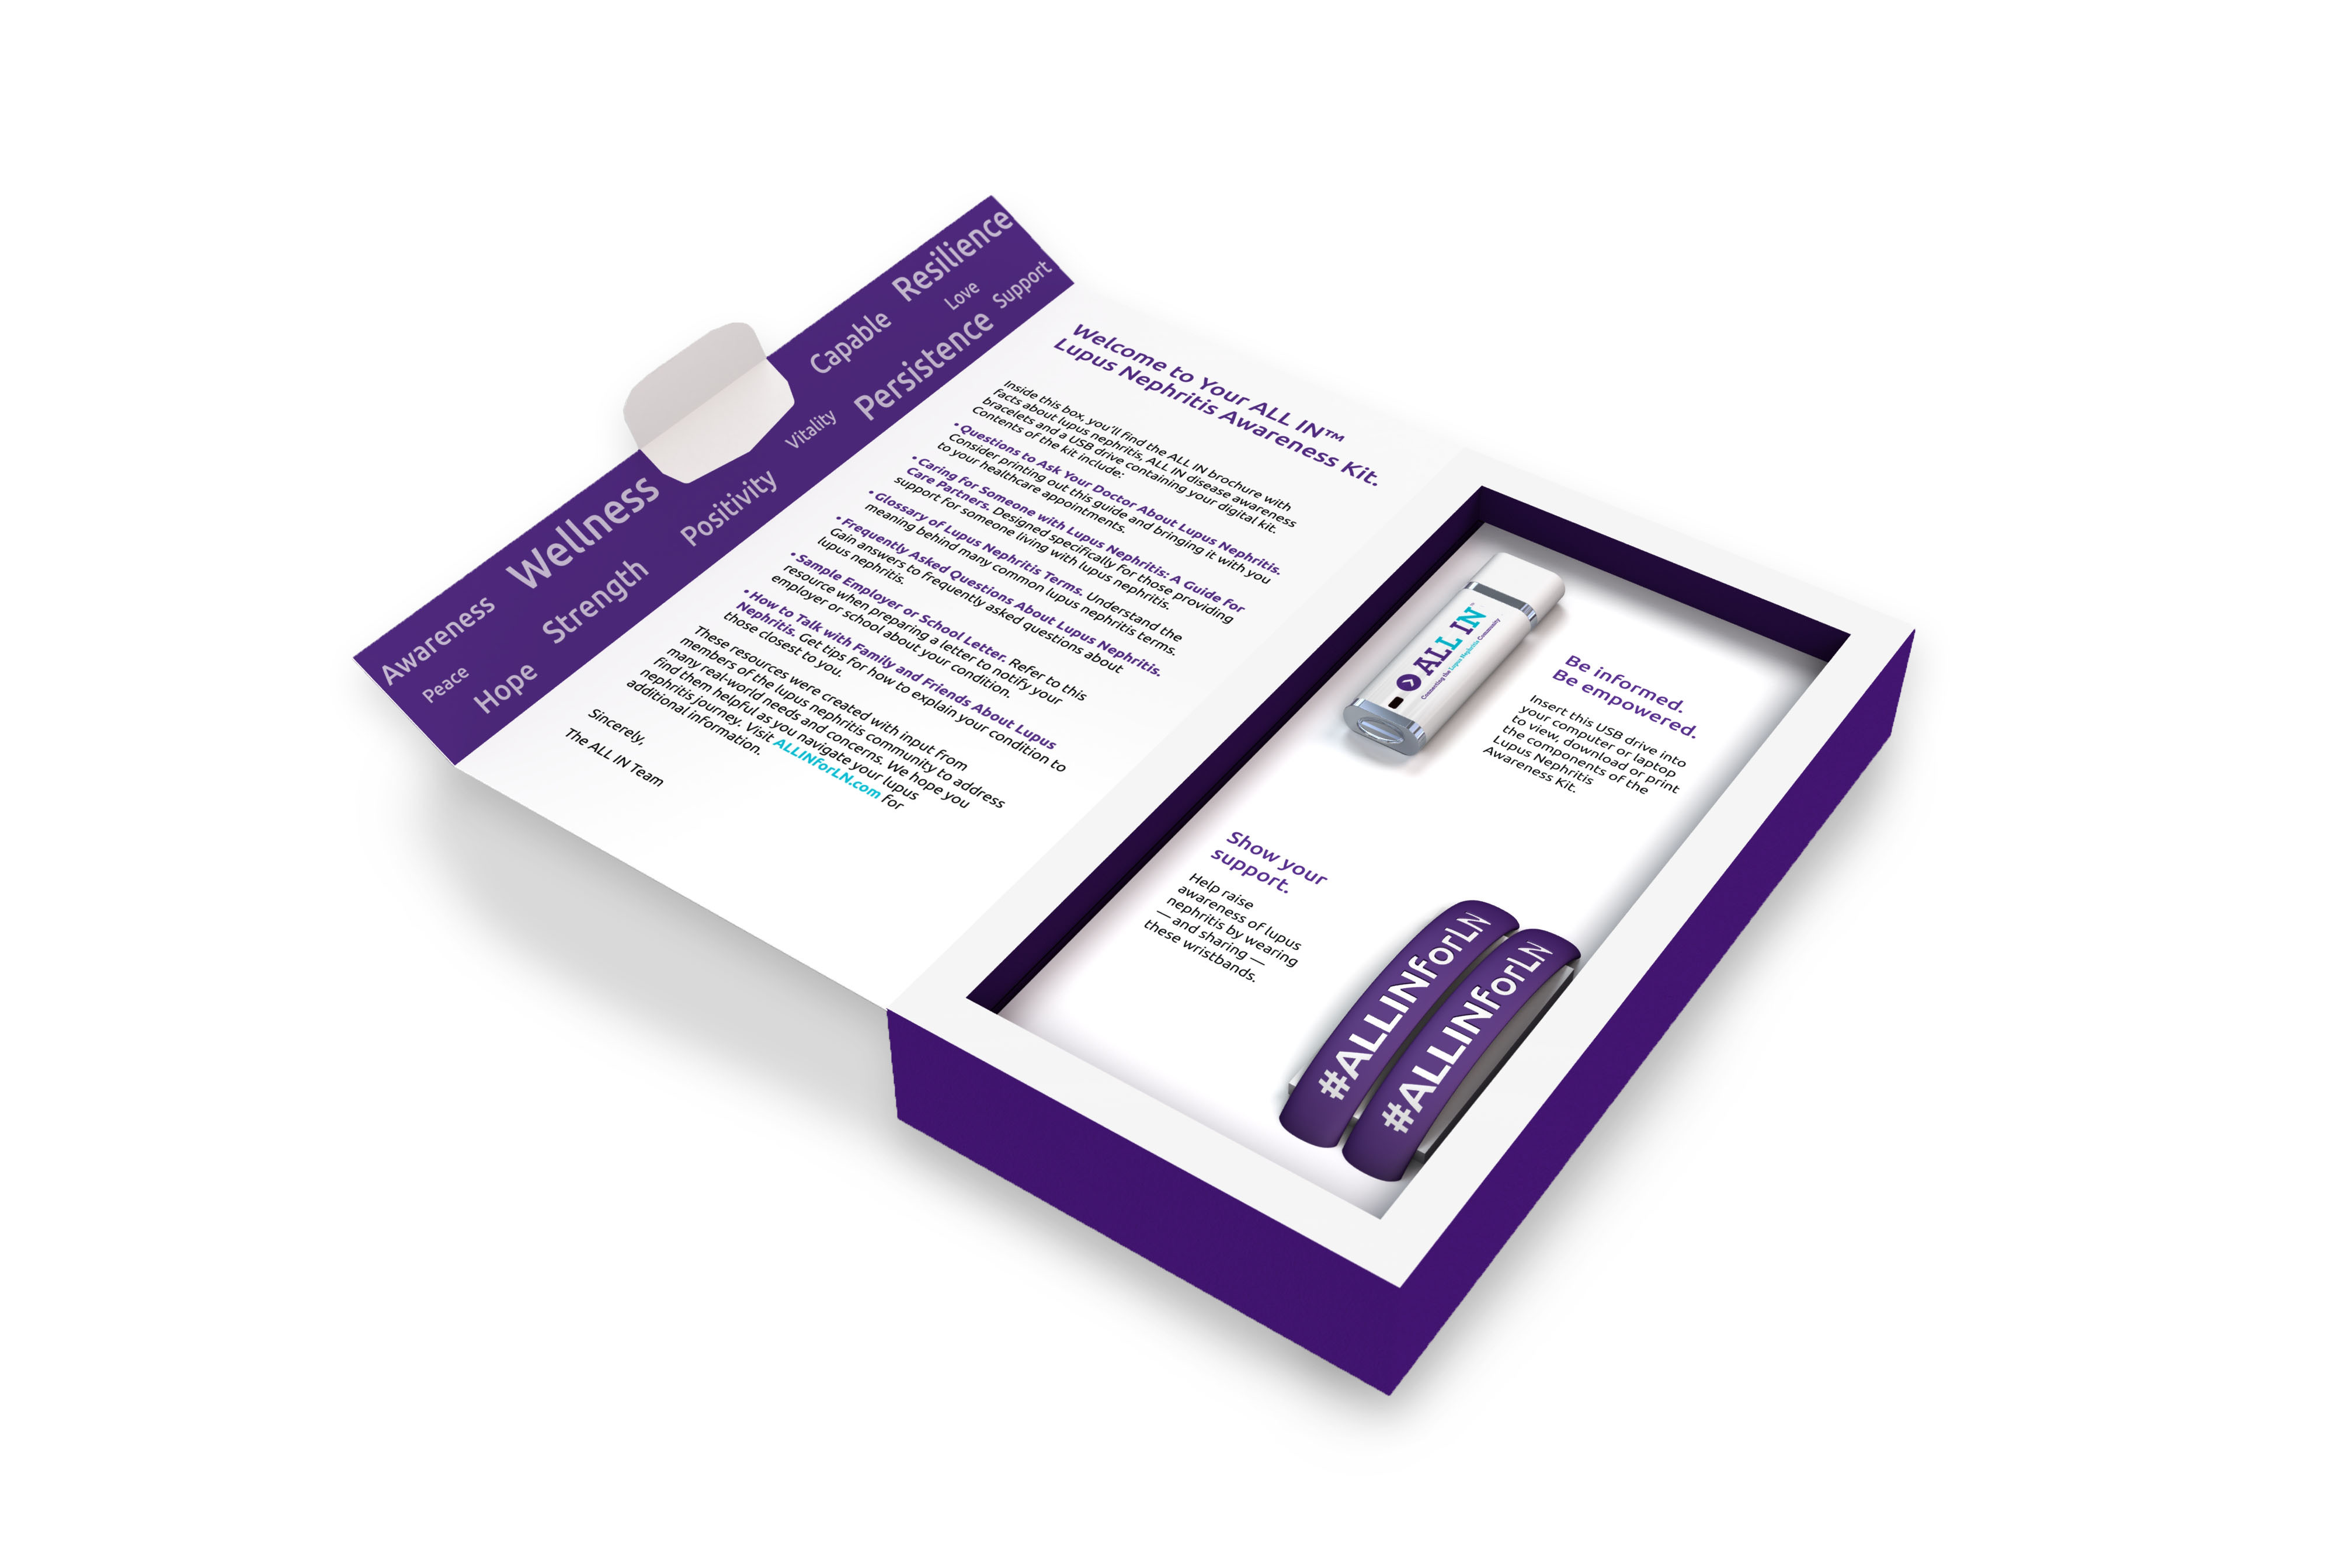 Be informed and empowered with the ALL IN™ Lupus Nephritis Awareness Resource Kit.